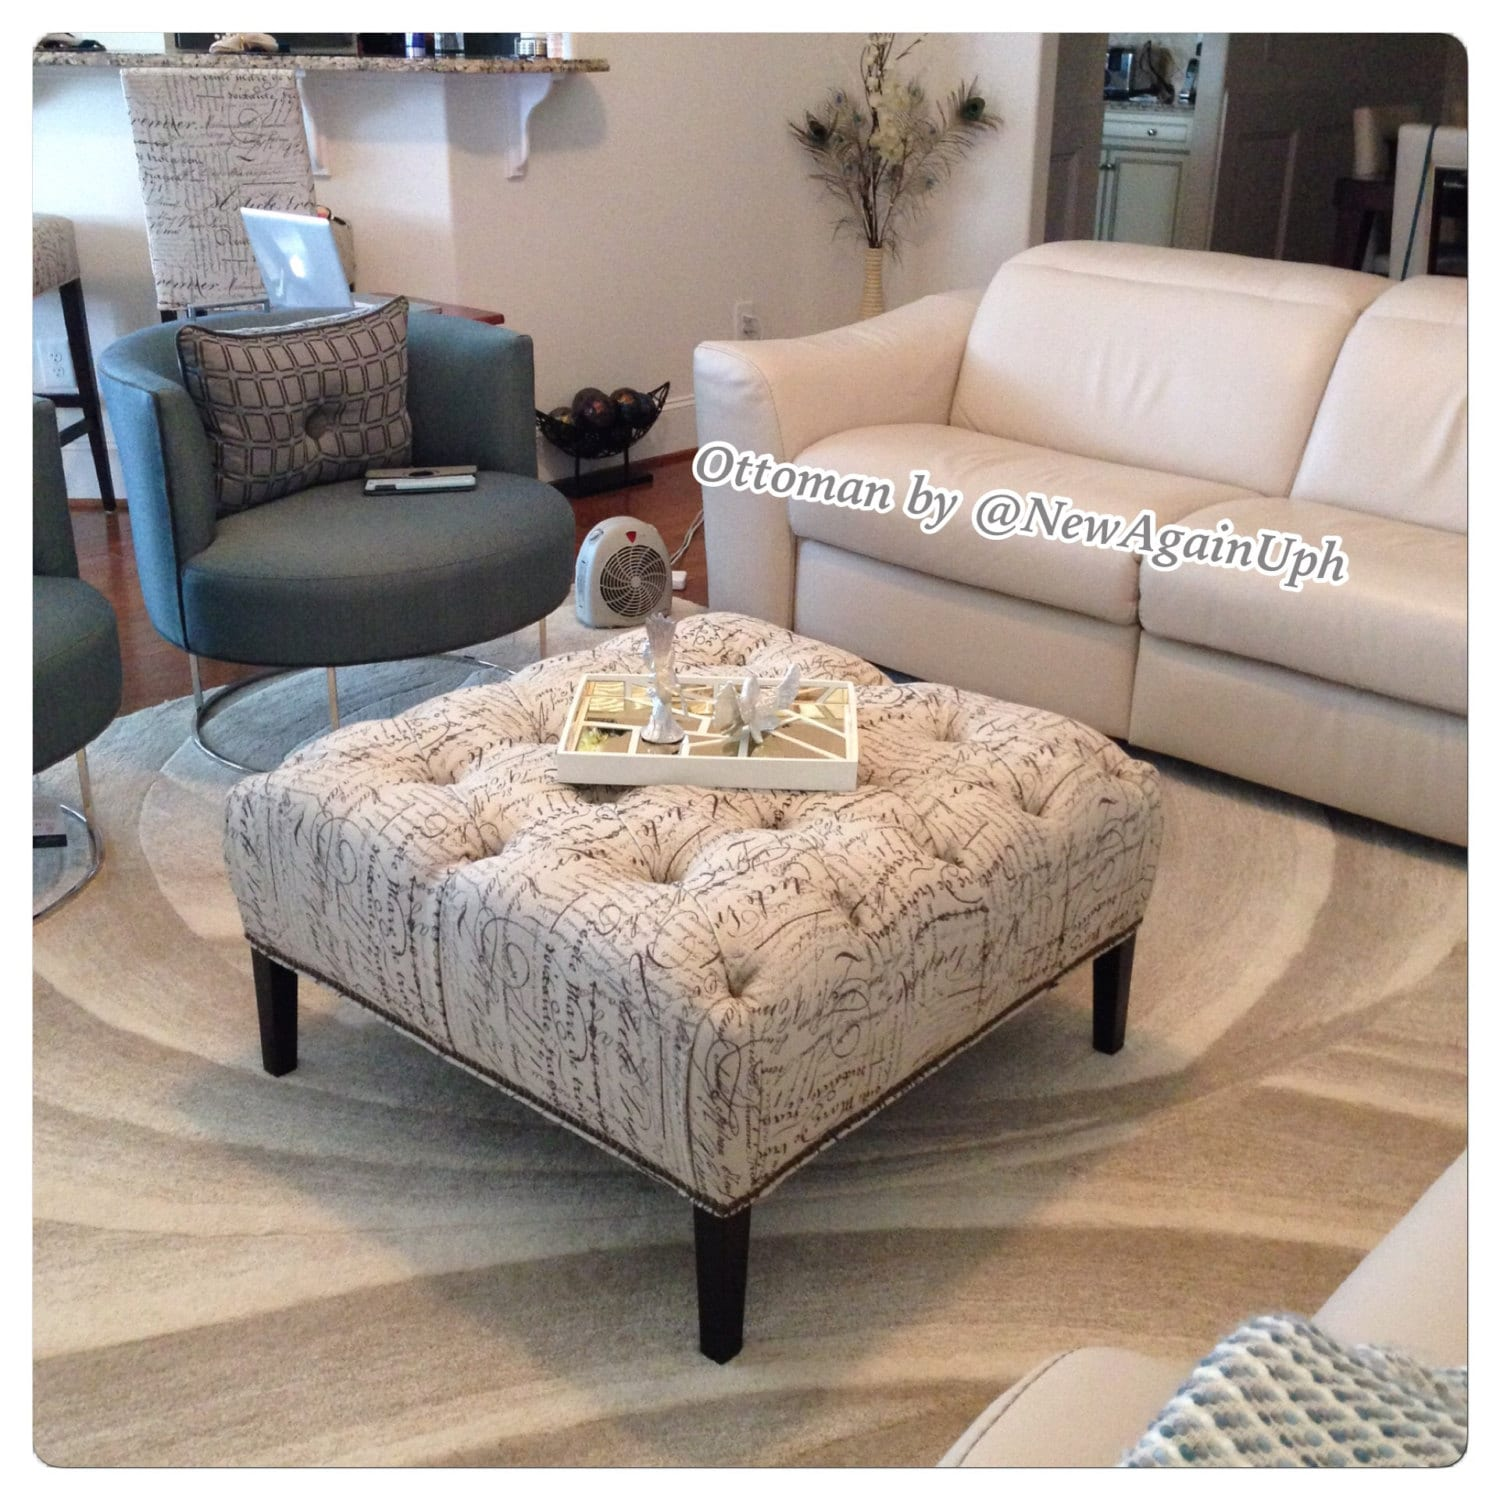 seating home your with ottoman for table tufted bench to coffee large create cocktail white favorable ways overwhelming round